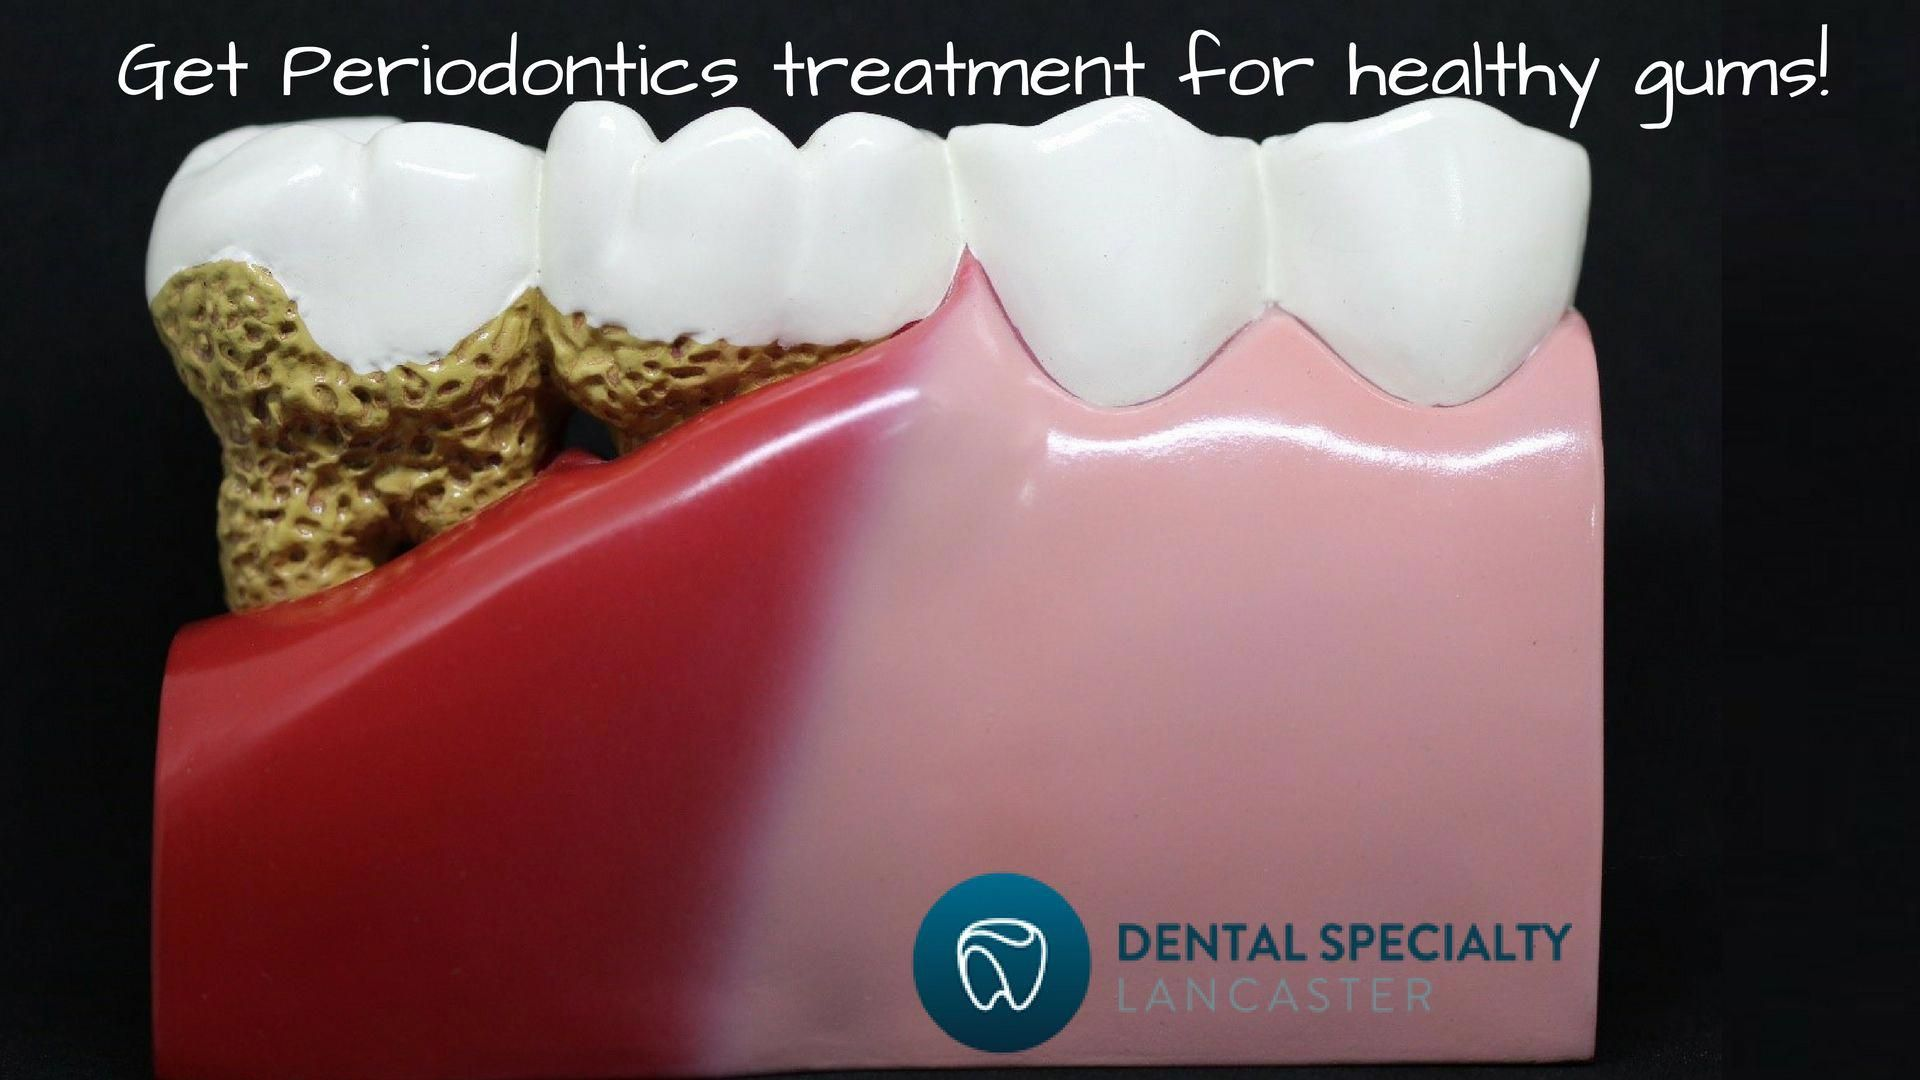 Have you notice some redness, swelling of the gums